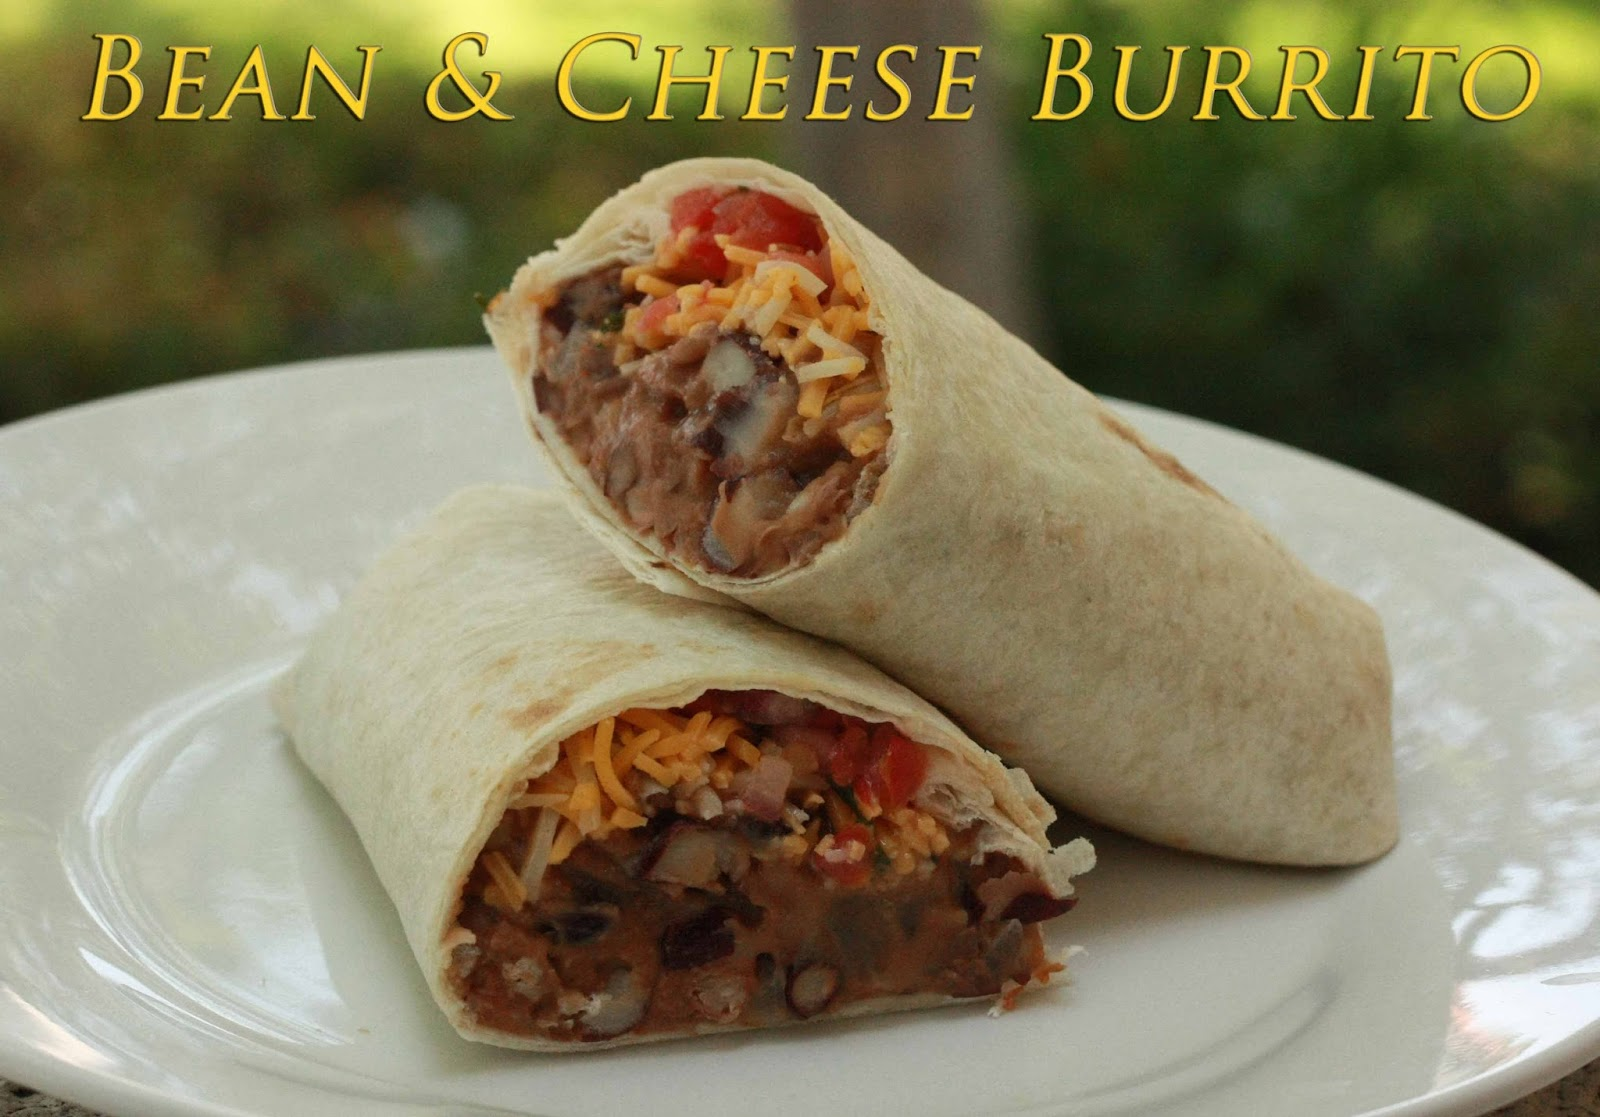 Sugar & Spice: Bean & Cheese Burrito